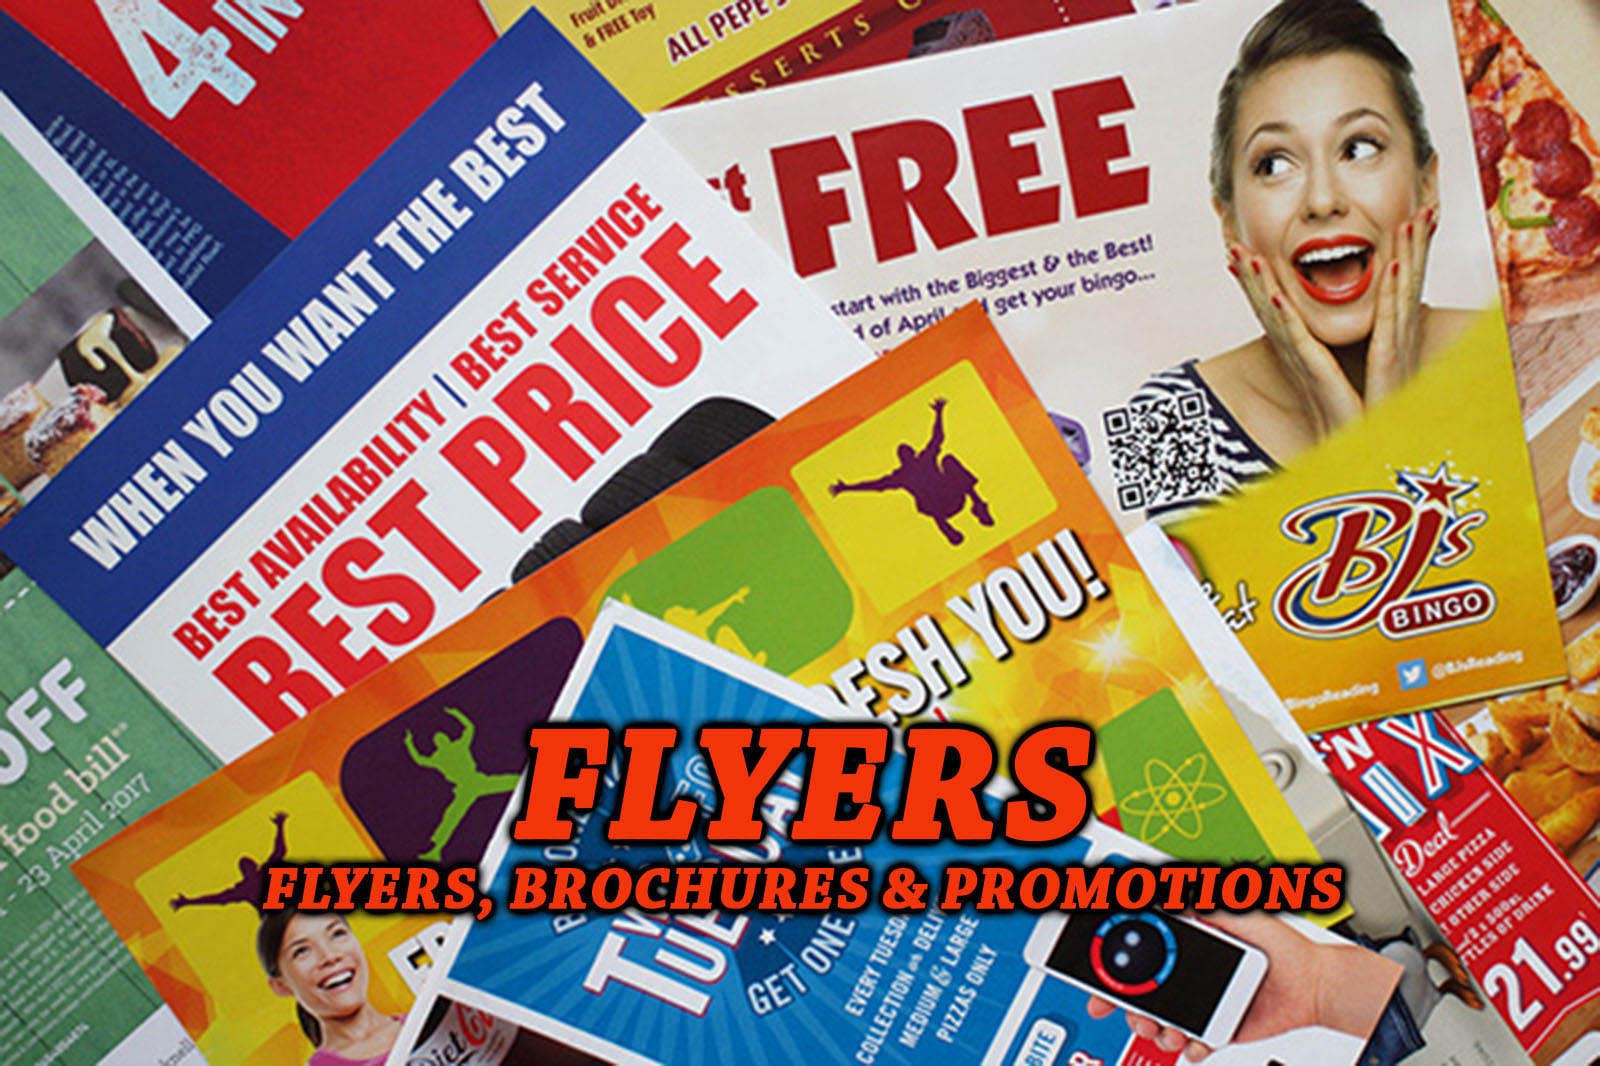 Flyers, Brochures and Promotions